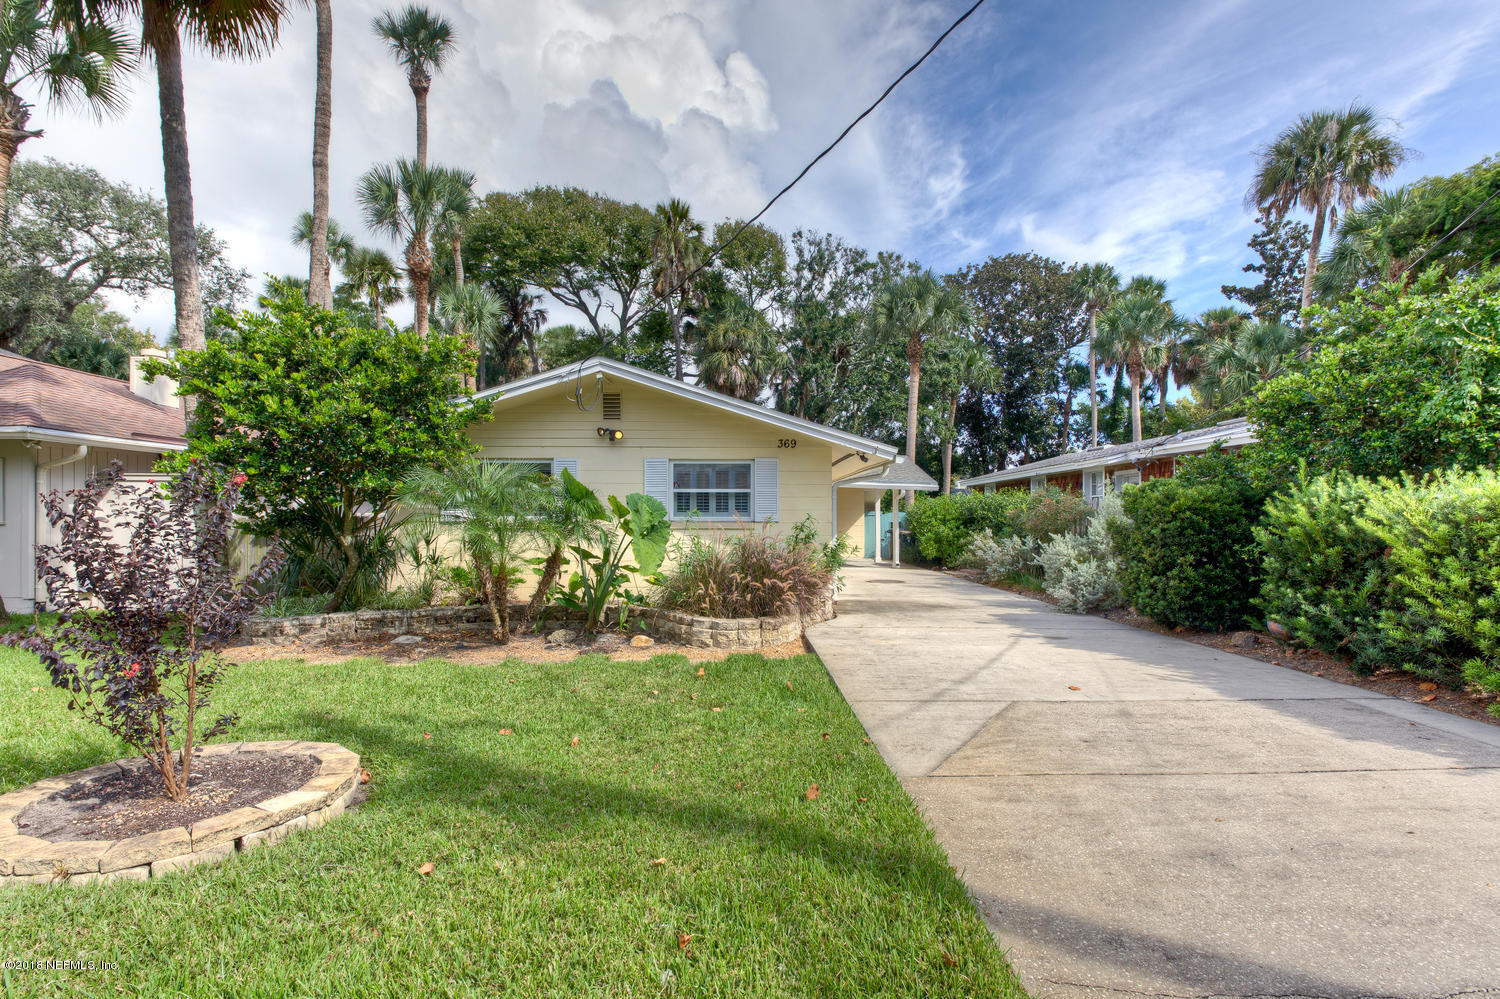 369 10TH, ATLANTIC BEACH, FLORIDA 32233, 3 Bedrooms Bedrooms, ,2 BathroomsBathrooms,Residential - single family,For sale,10TH,955214